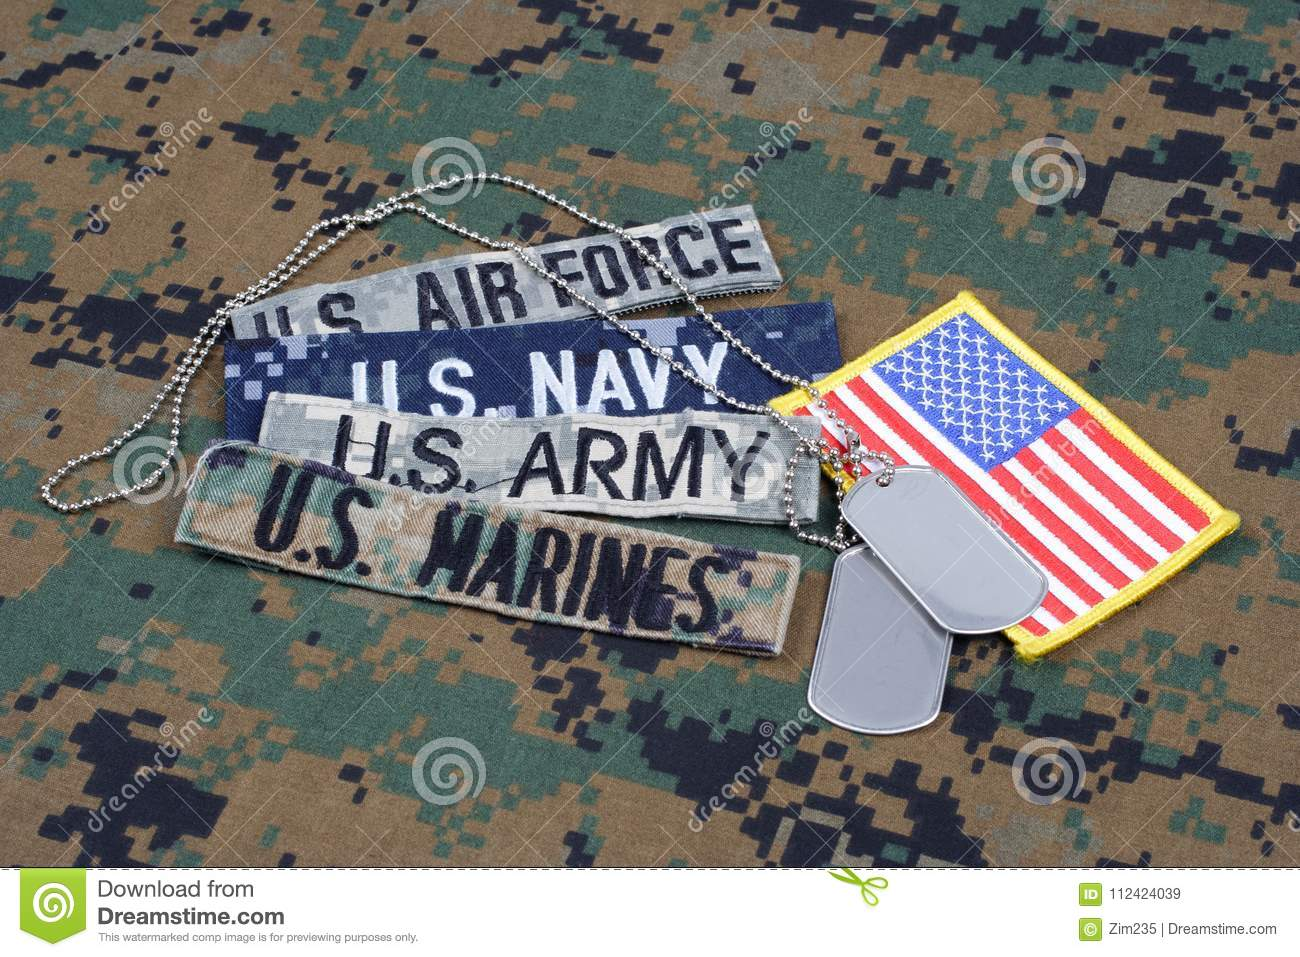 US MILITARY concept with branch tapes and dog tags on camouflage uniform